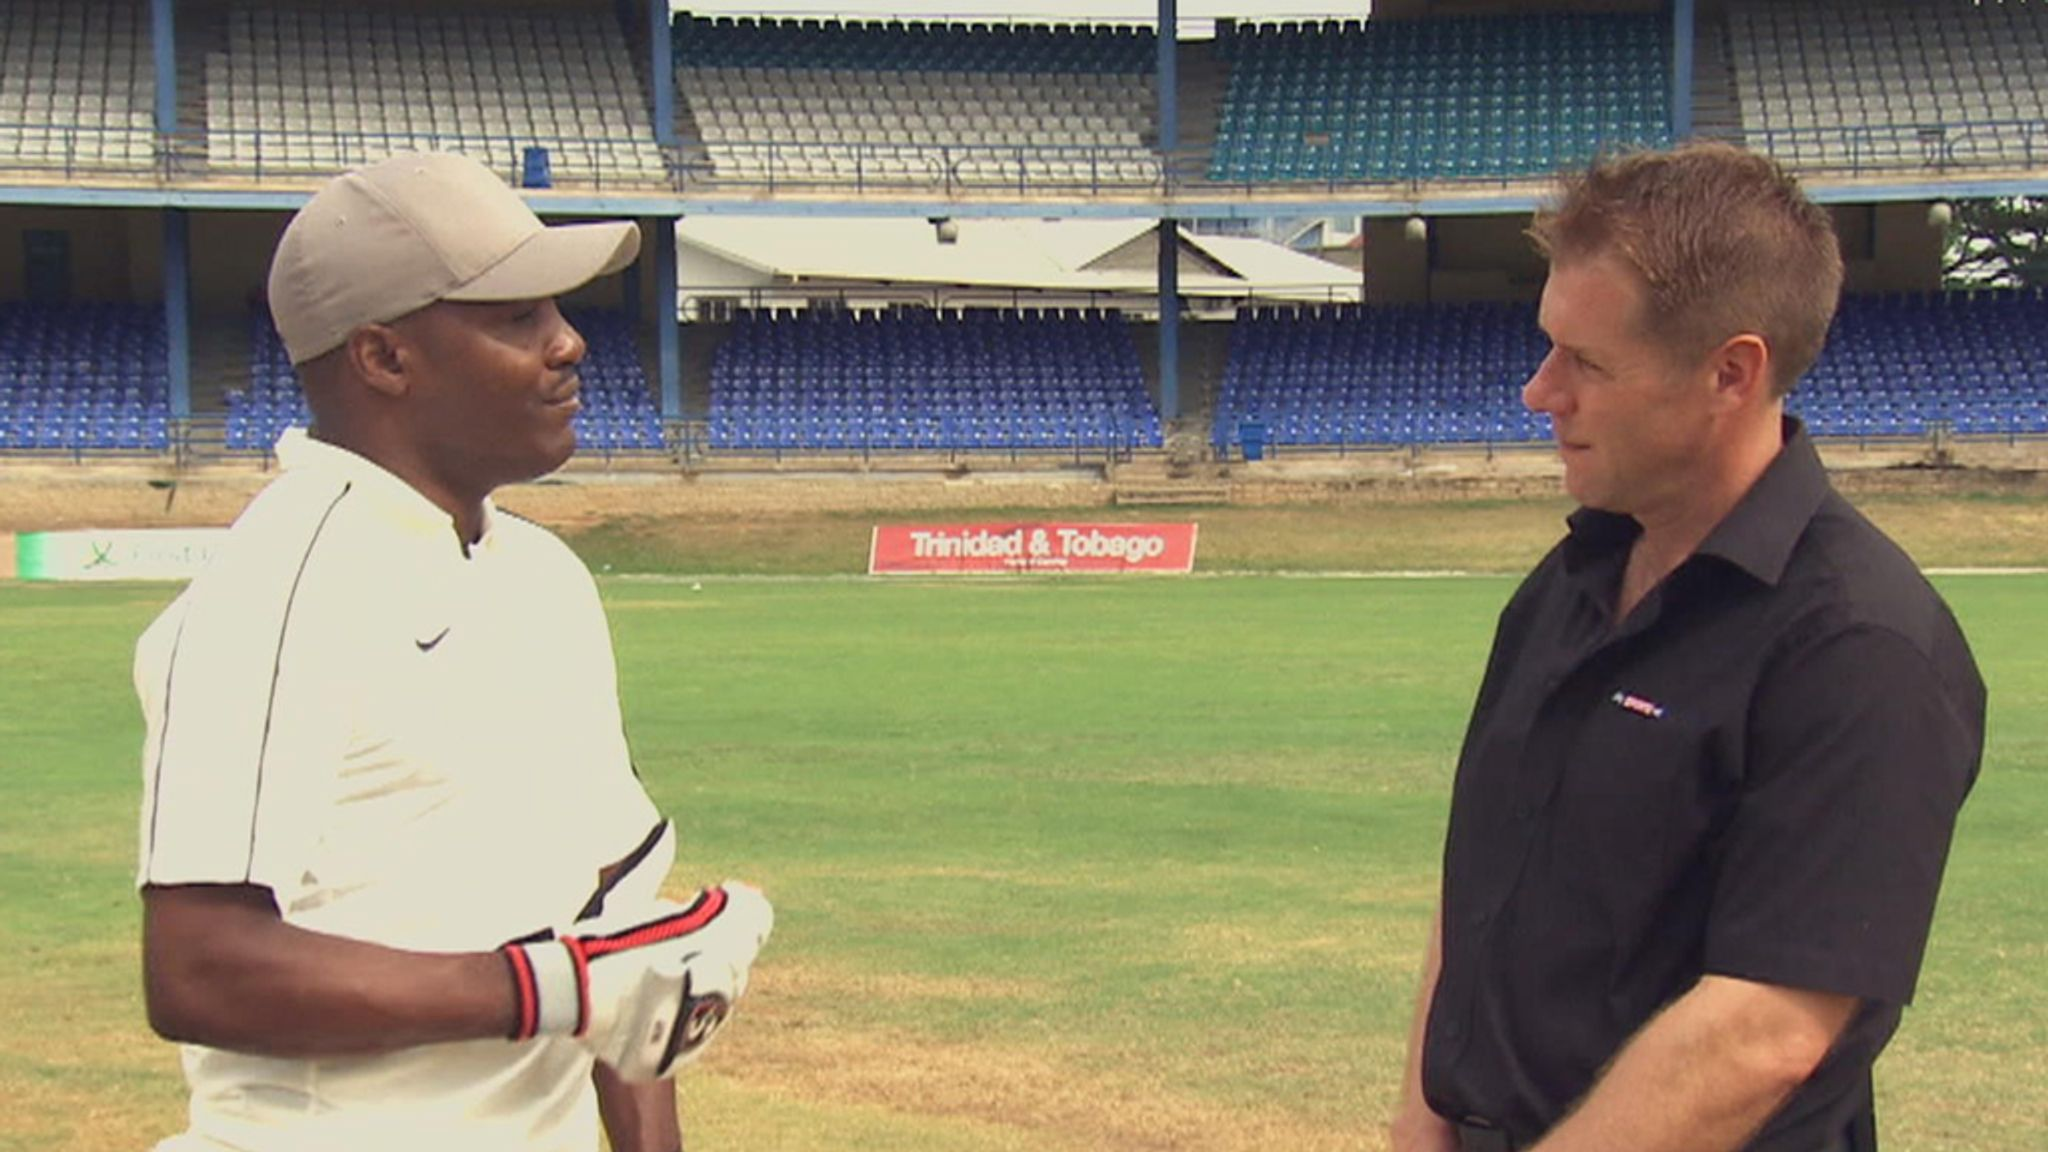 Brian Lara Masterclass: how to bat like the West Indies